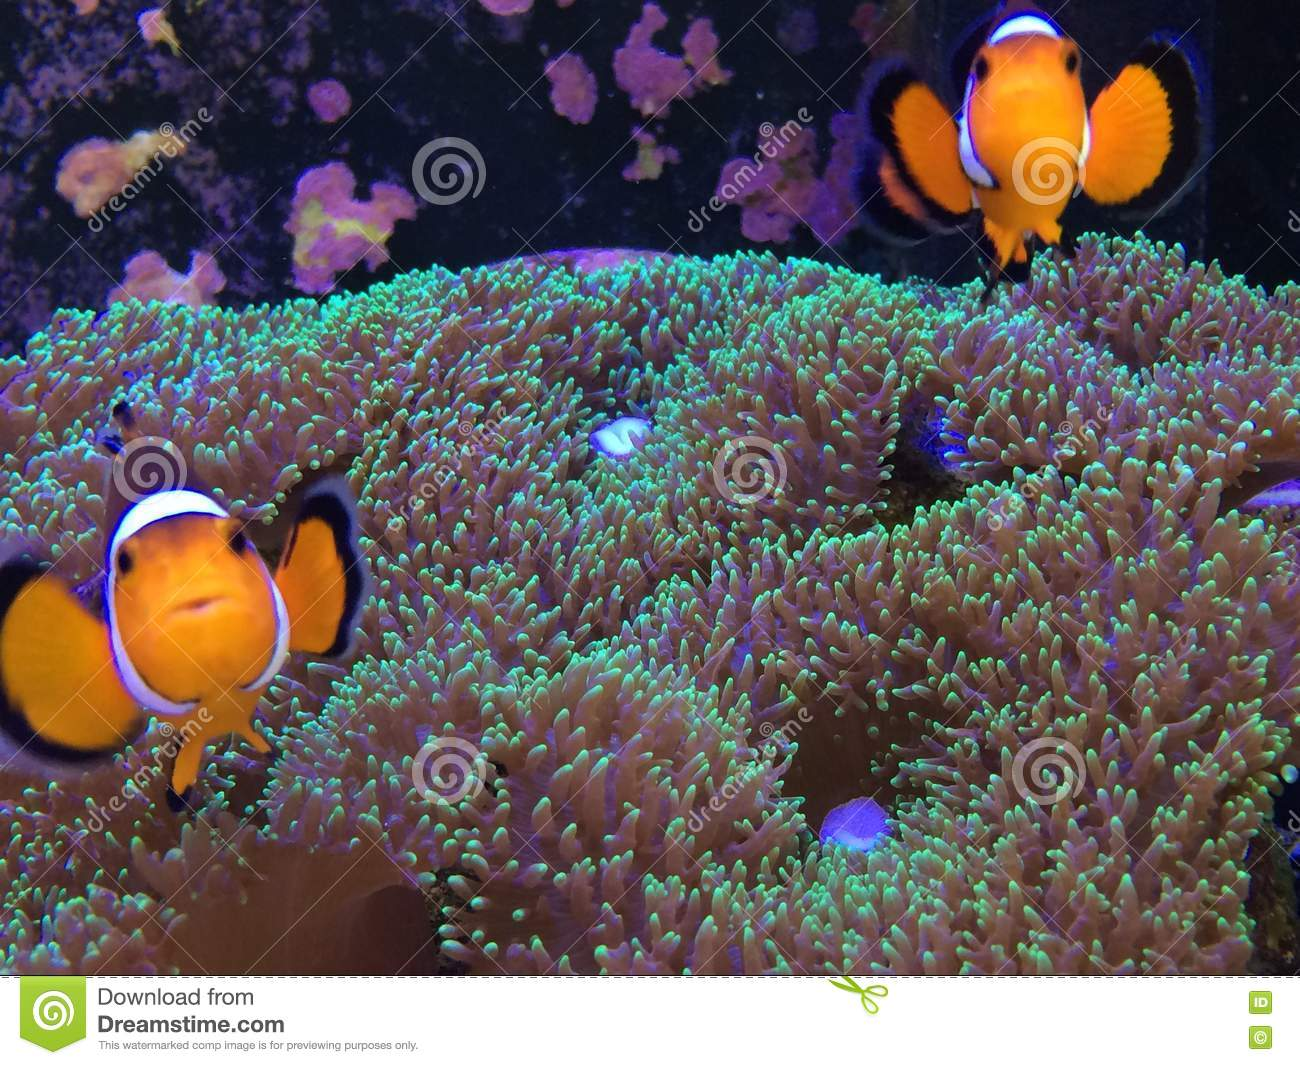 Fish in tank nemo - Finding Nemo On A Real Fish Tank